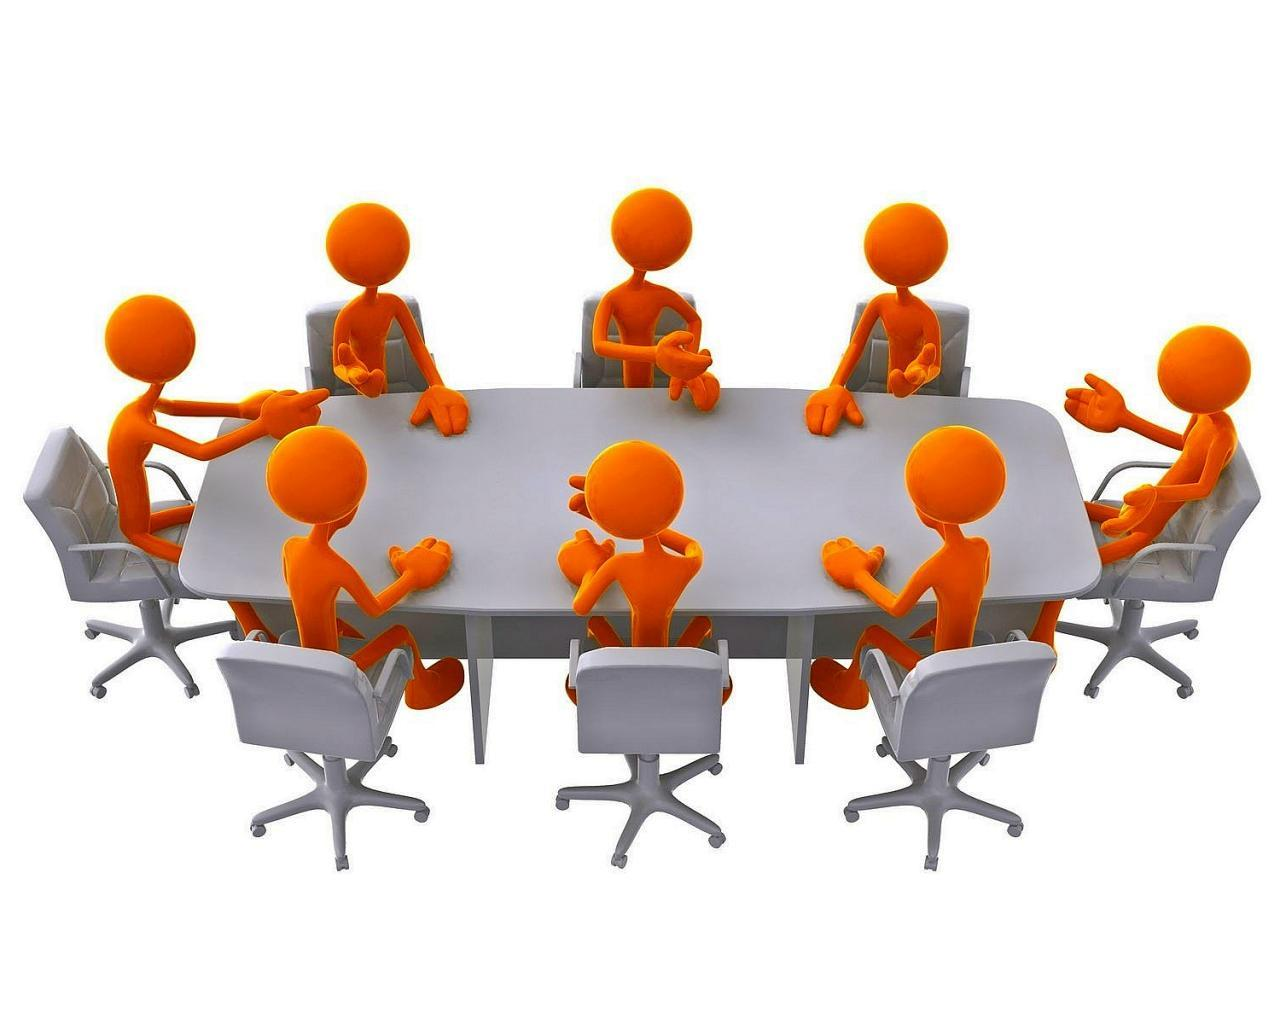 Clipart board room image royalty free stock Boardroom clipart 5 » Clipart Portal image royalty free stock